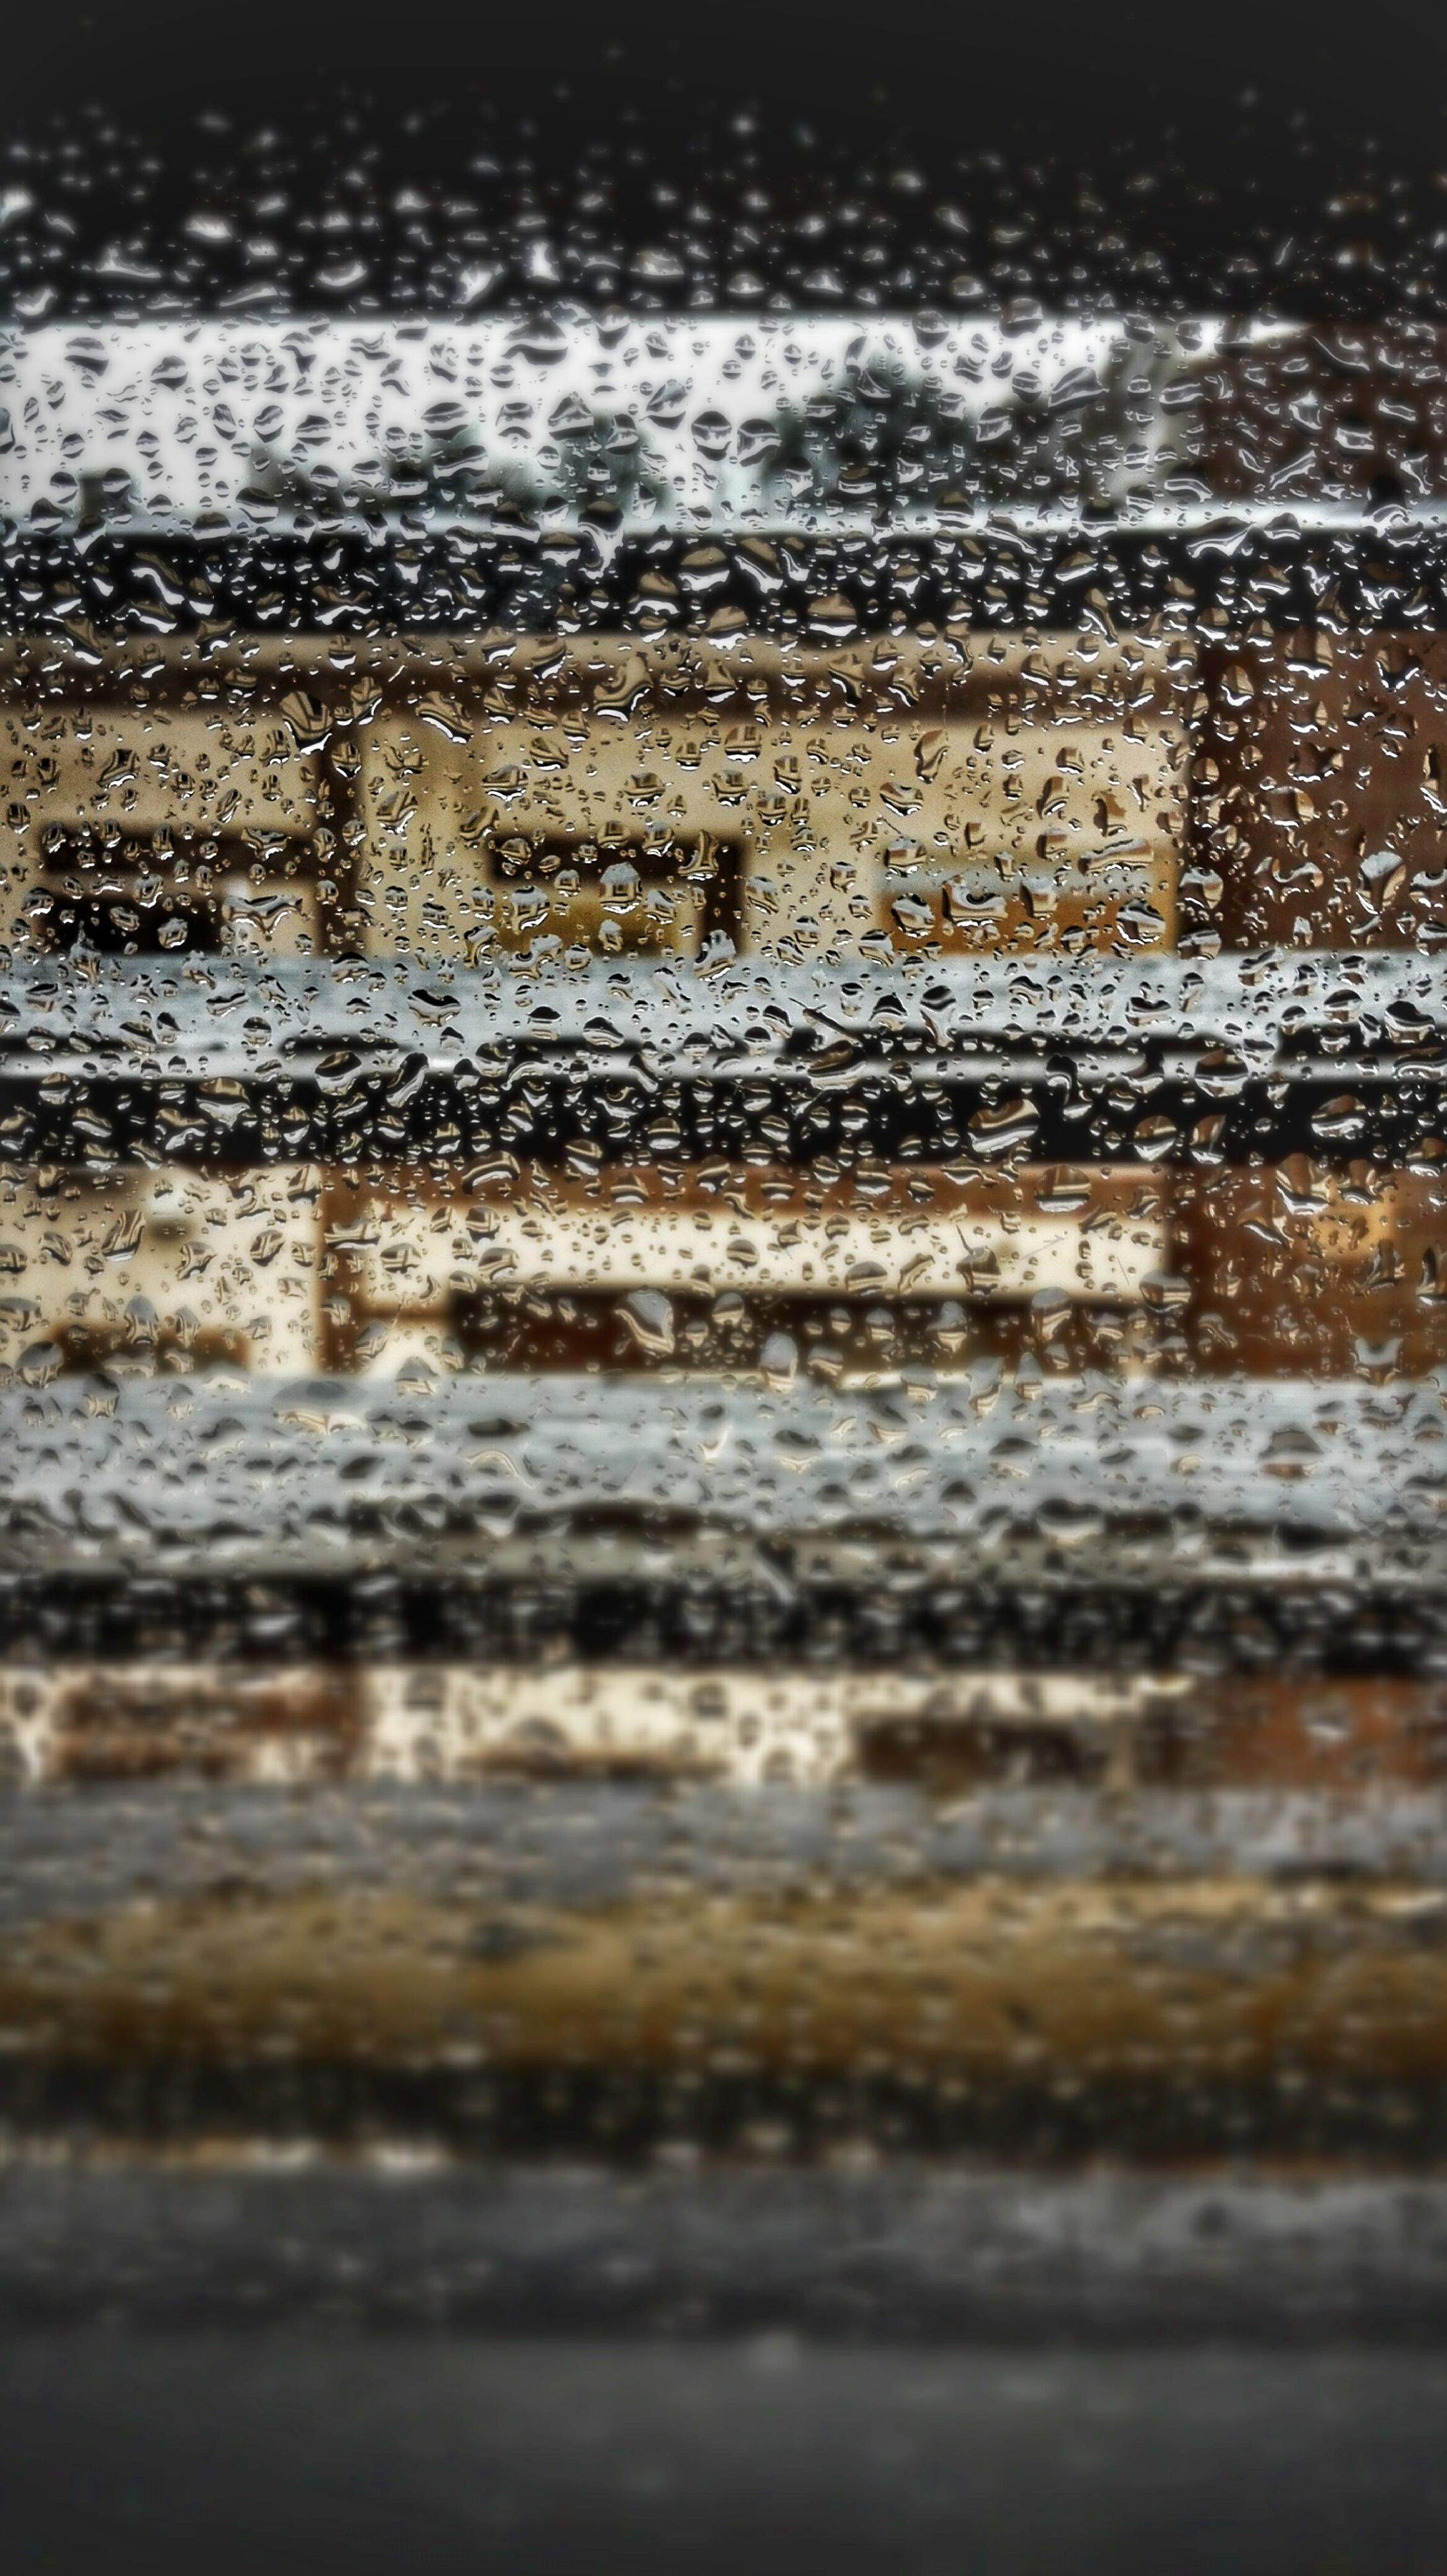 water, wet, lake, waterfront, drop, rippled, nature, reflection, rain, motion, transparent, no people, close-up, river, selective focus, outdoors, day, tranquility, surface level, full frame